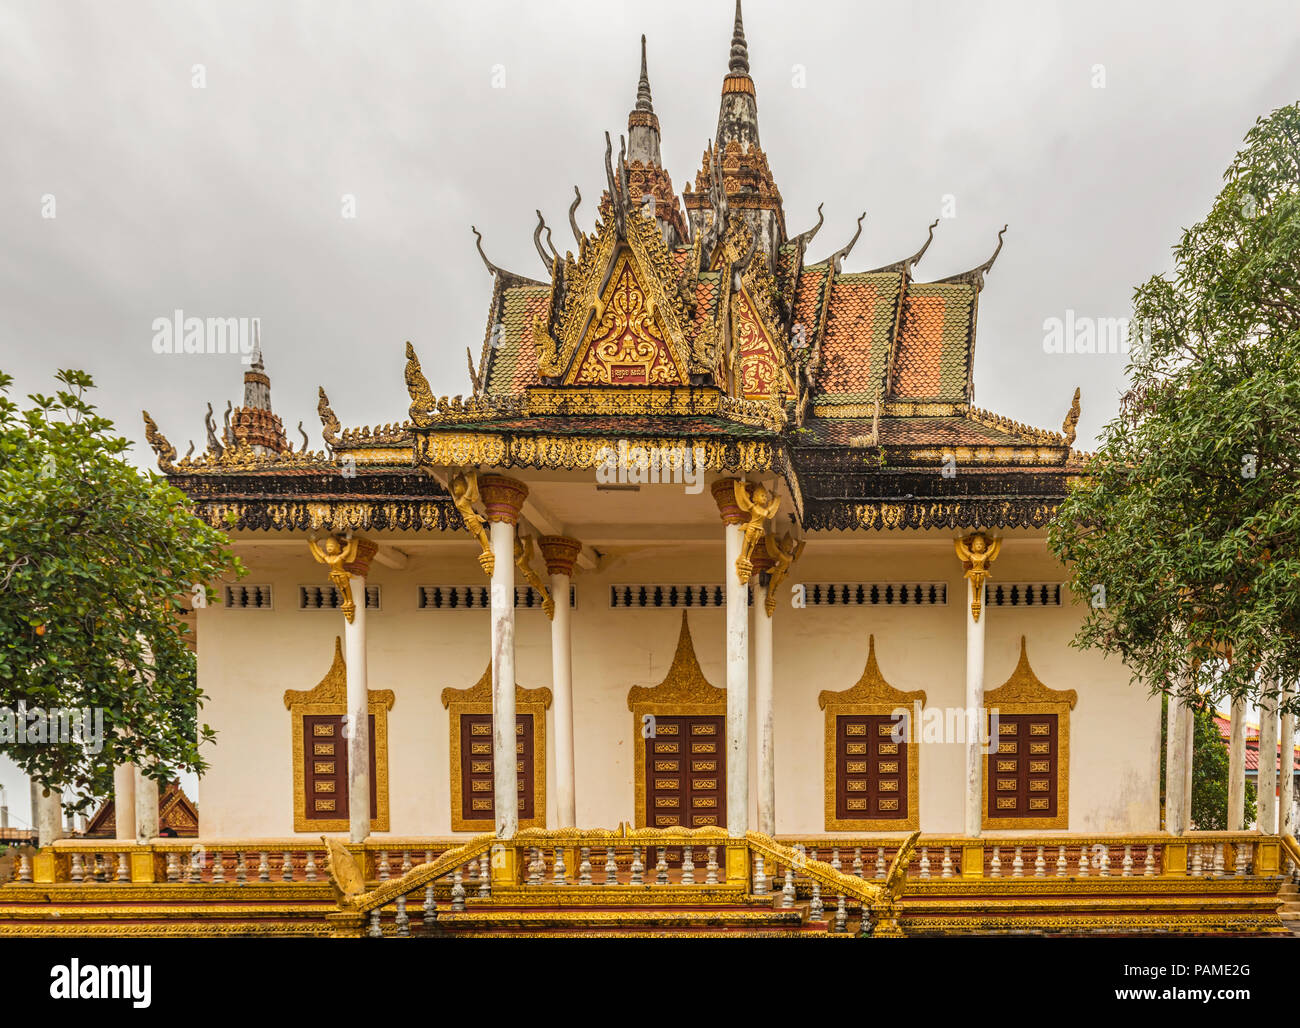 Front facade of the great Buddhist temple Wat IntNhean called Wat Krom with all its ornaments in Sihanoukville, also known as Kampong Som, Cambodia. - Stock Image